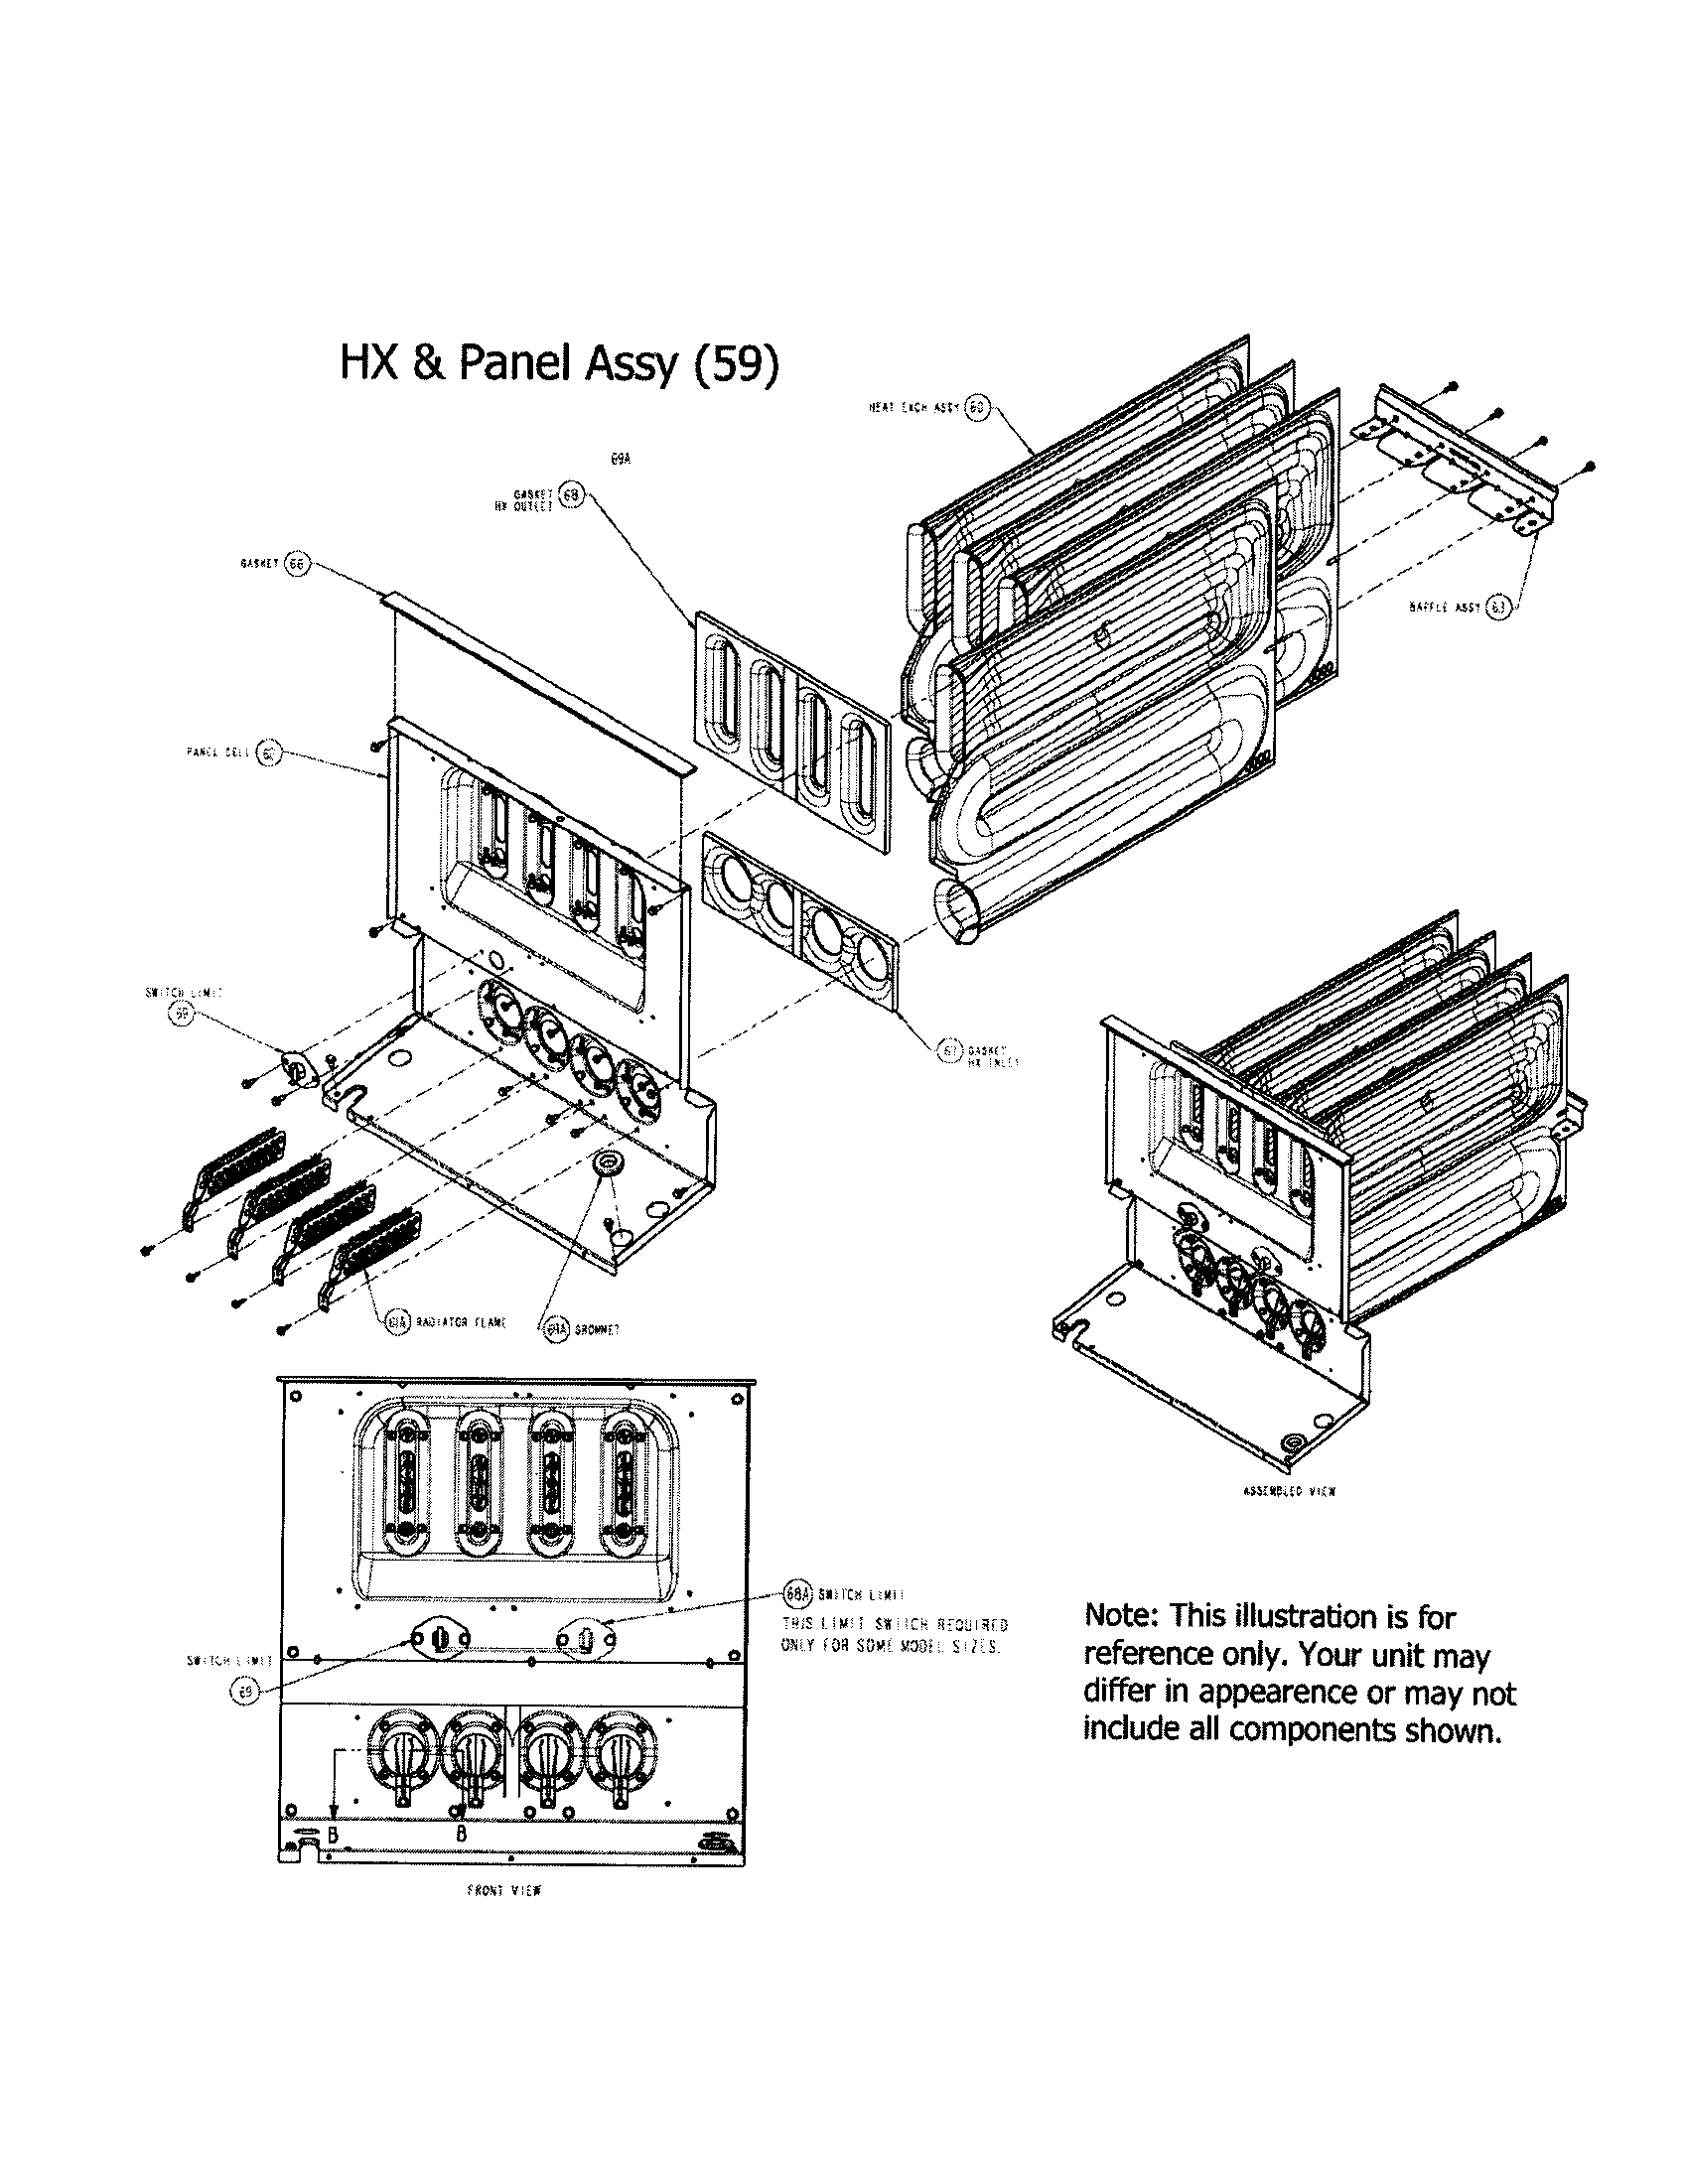 Carrier  Furnace  Hx and panel assembly